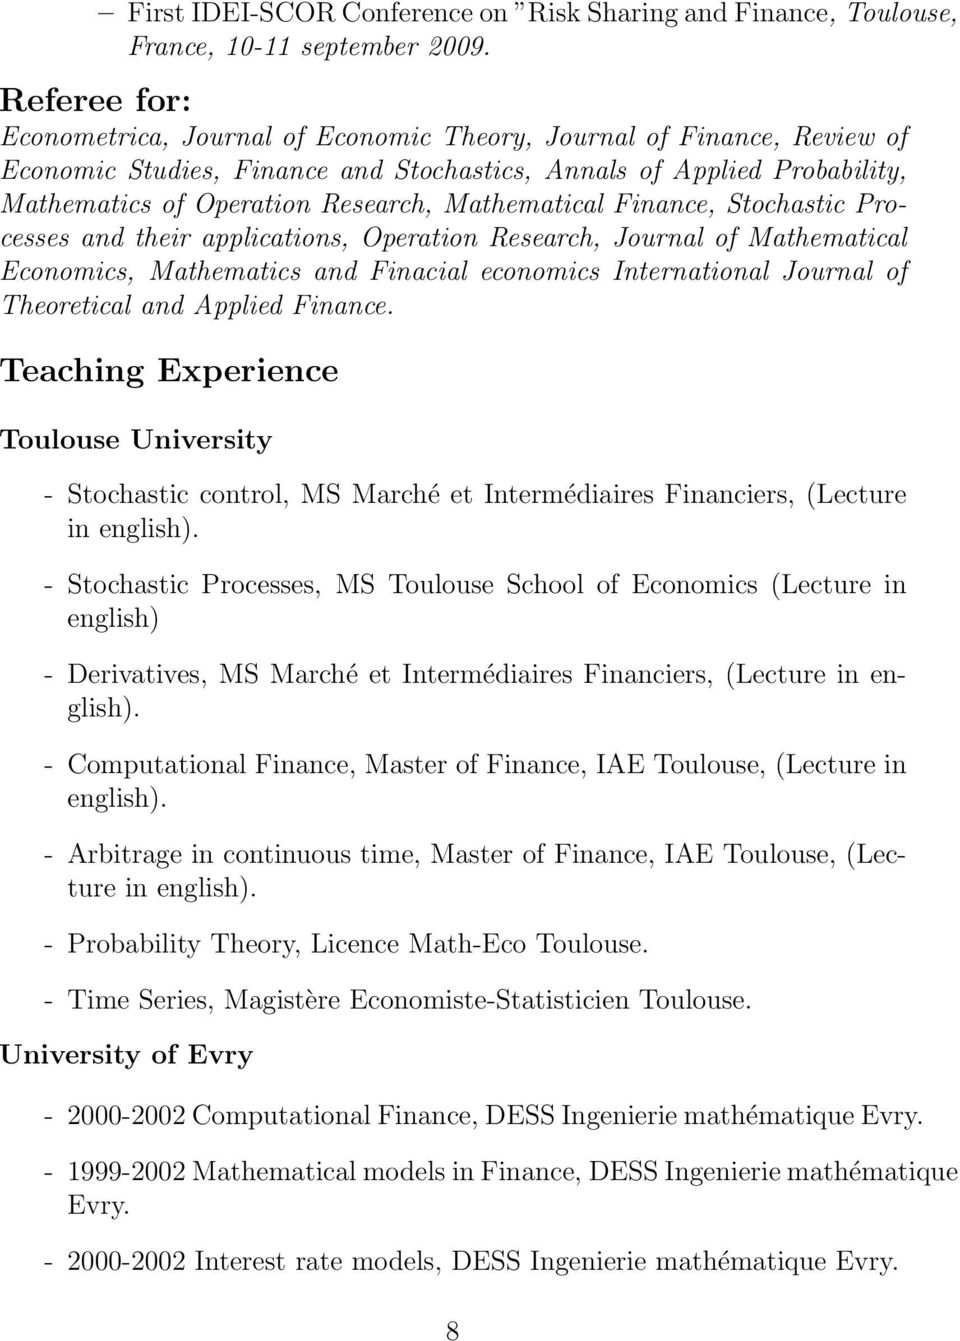 Mathematical Finance, Stochastic Processes and their applications, Operation Research, Journal of Mathematical Economics, Mathematics and Finacial economics International Journal of Theoretical and